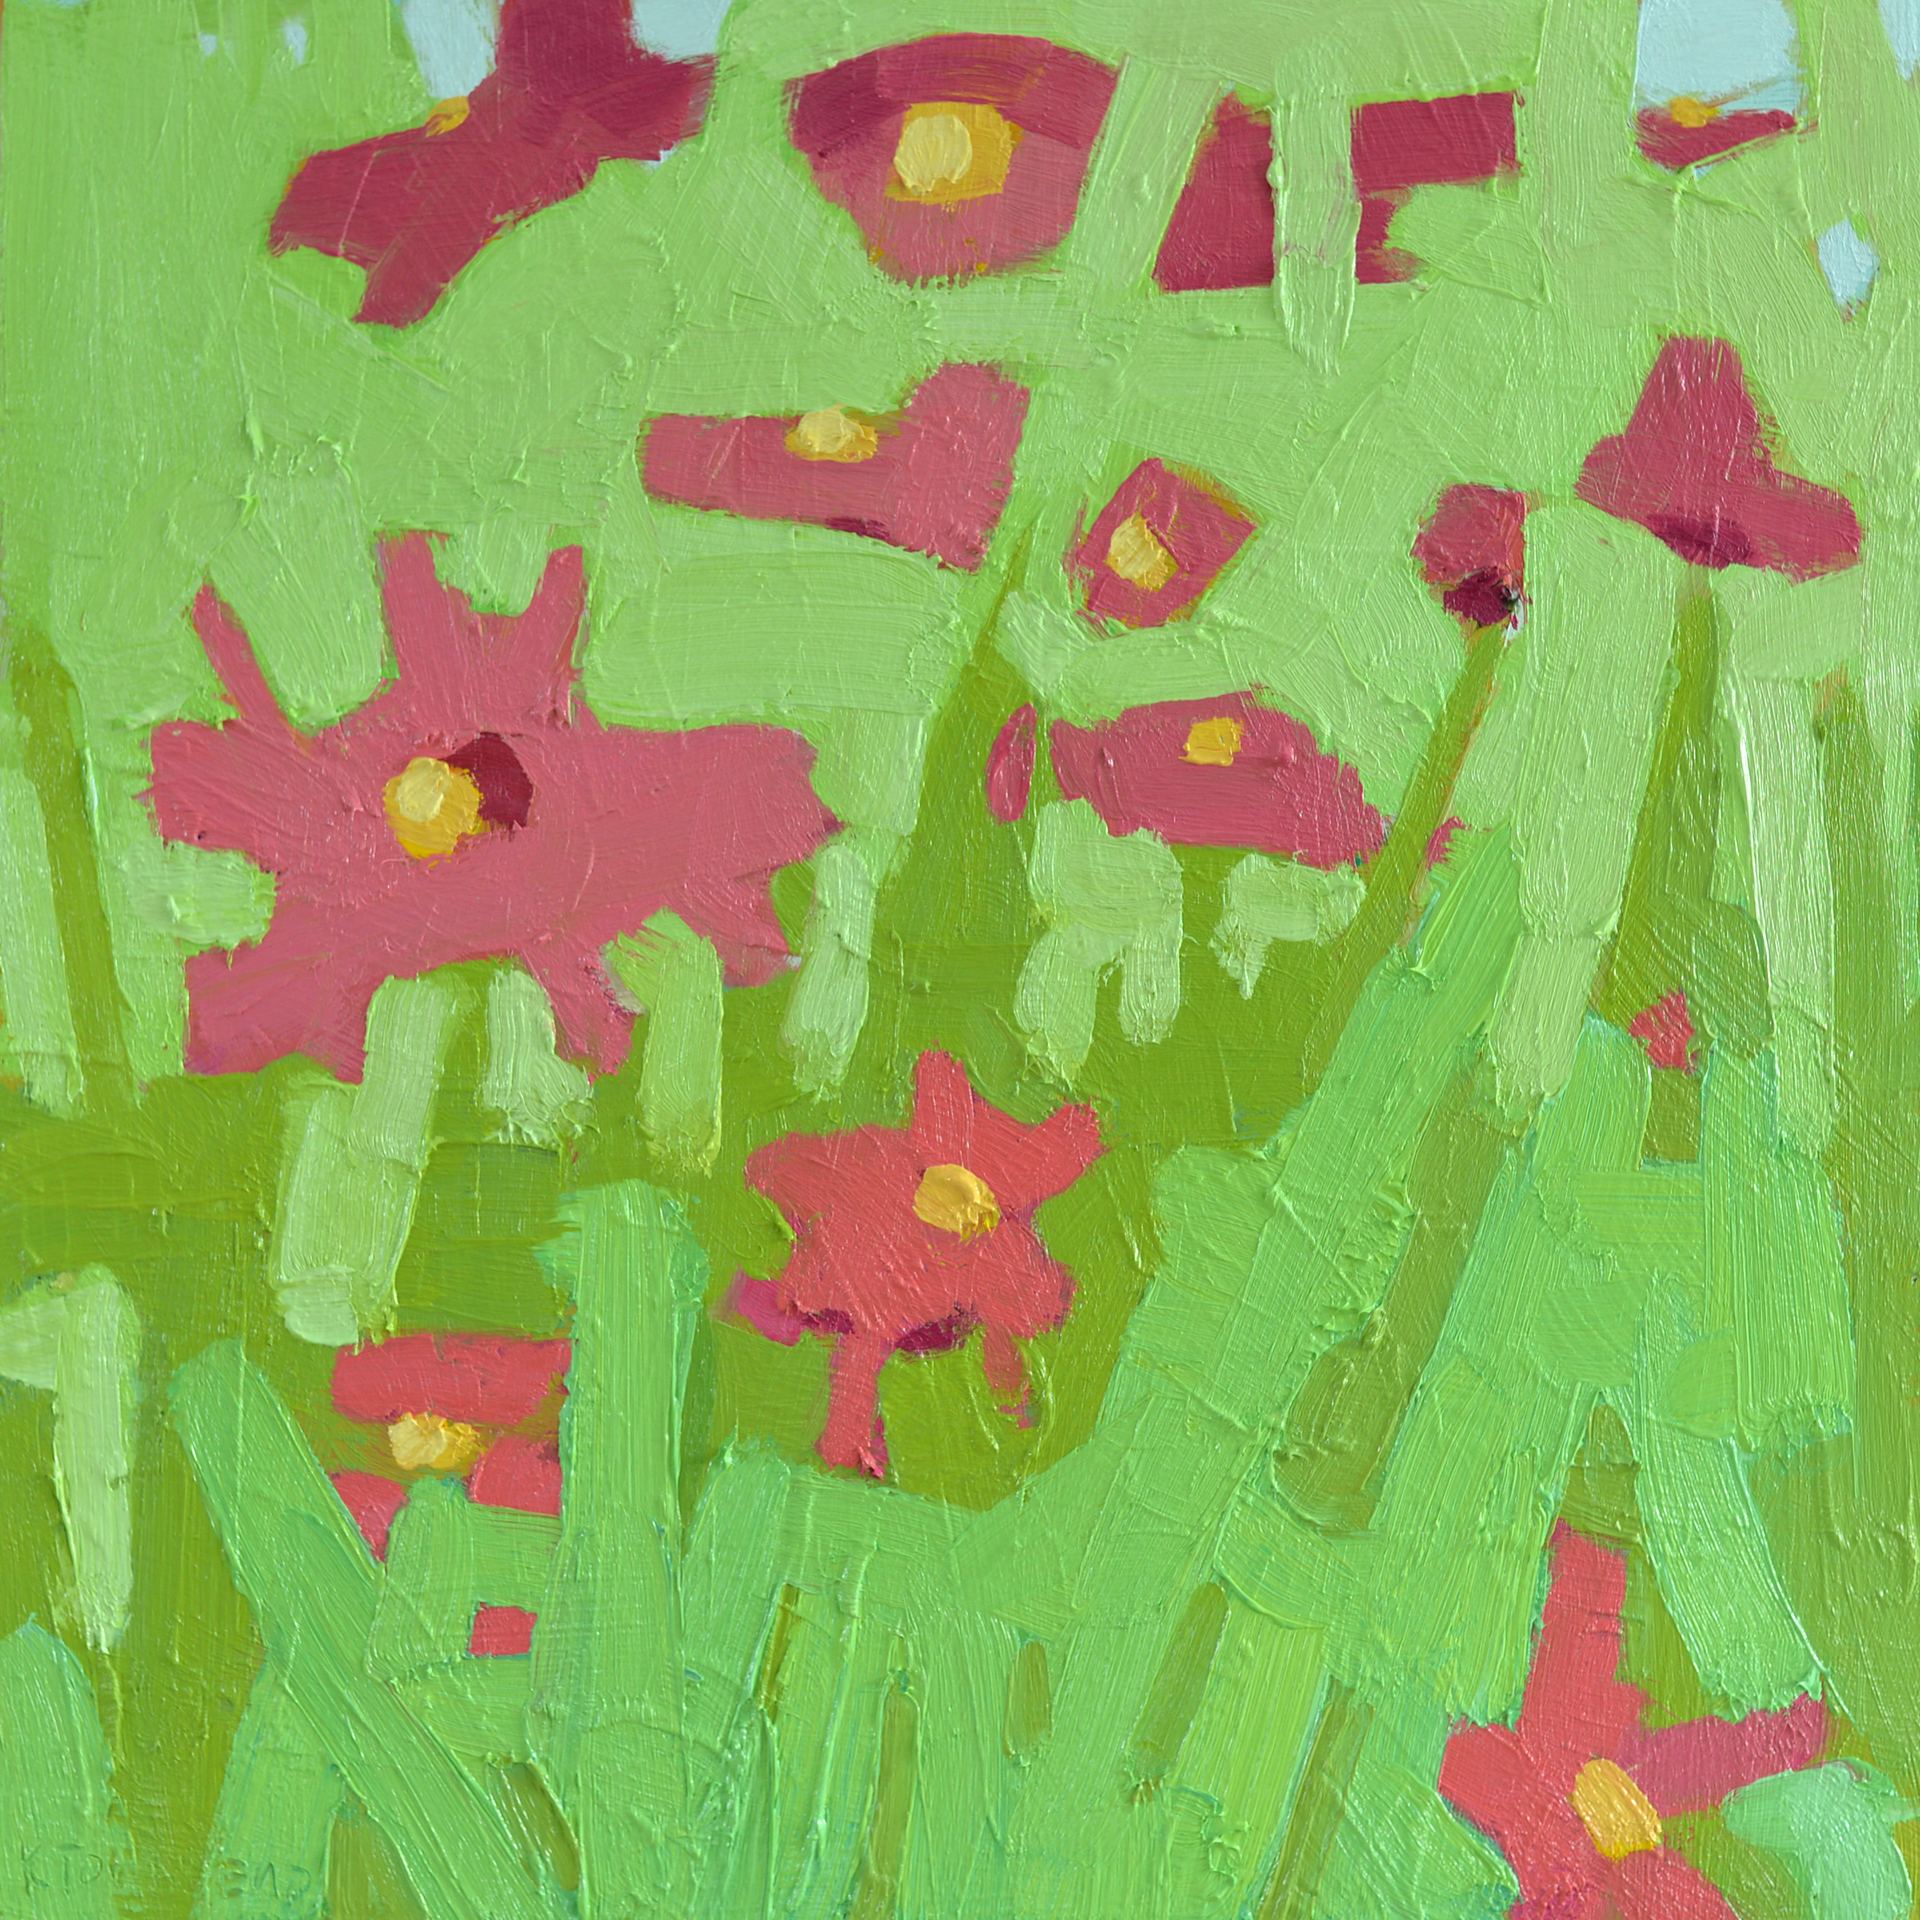 Pink Flower Shapes by Krista Townsend